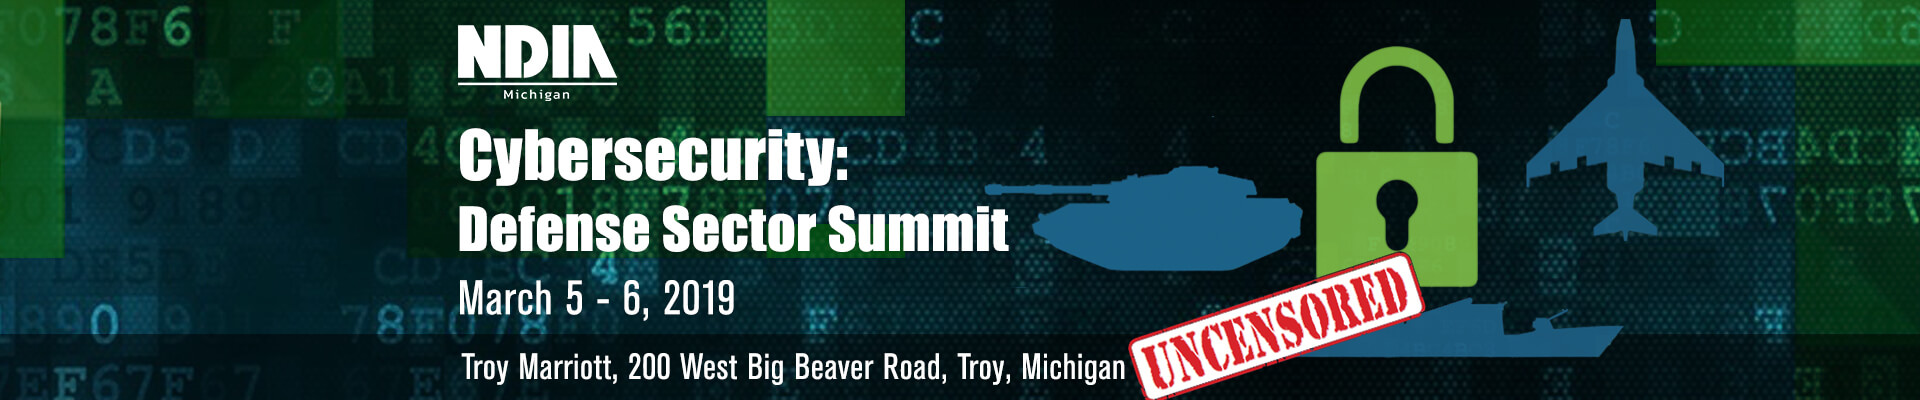 NDIA Michigan 2019 Cybersecurity: Defense Sector Summit